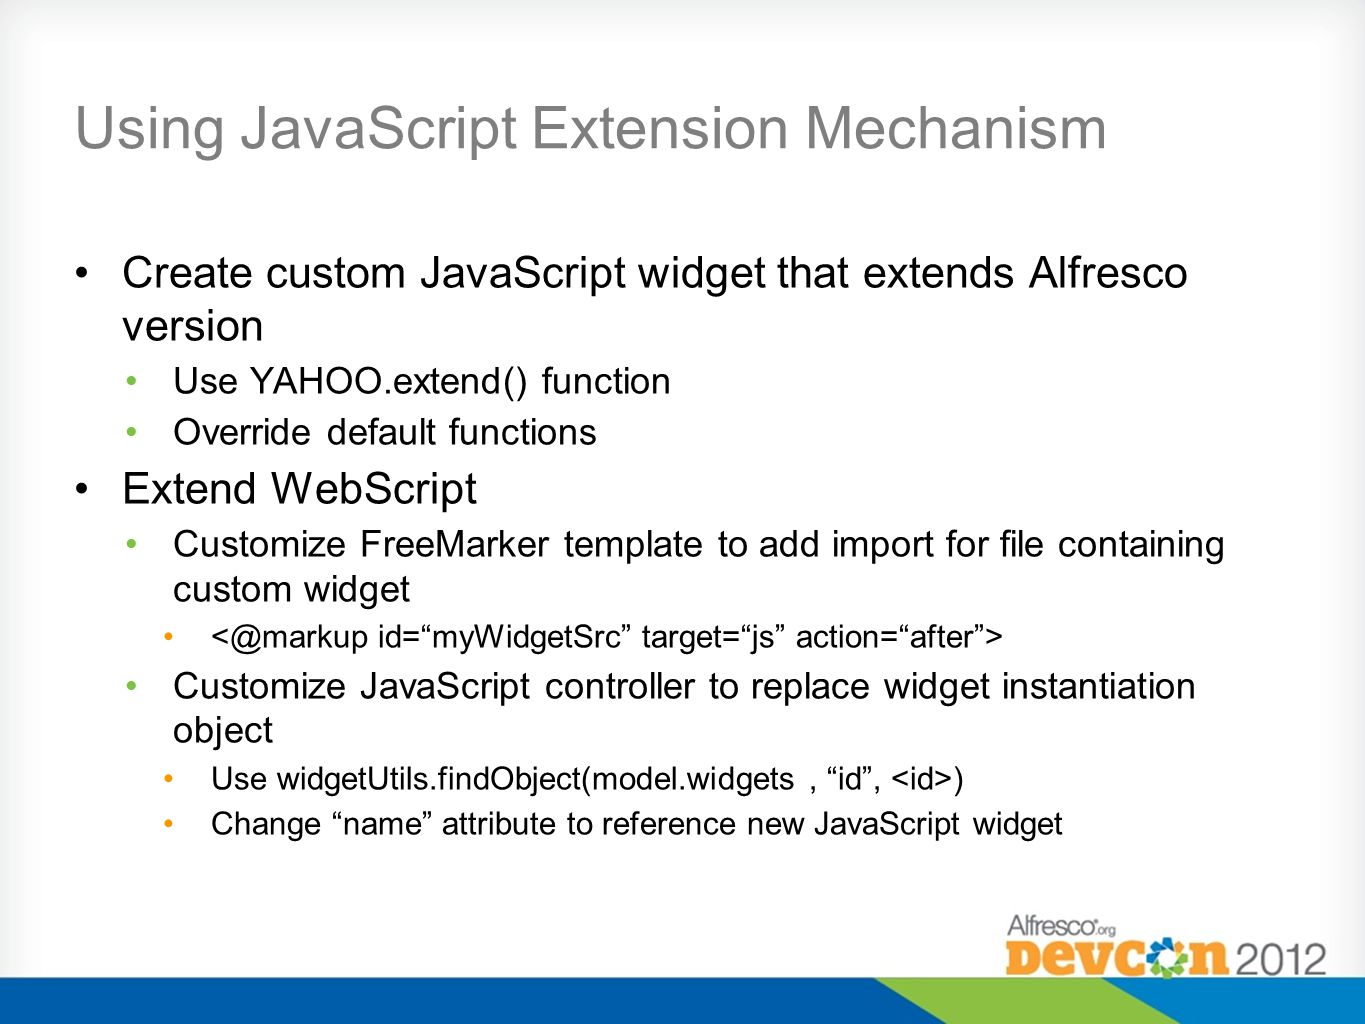 Using JavaScript Extension Mechanism Create custom JavaScript widget that extends Alfresco version Use YAHOO.extend() function Override default functions Extend WebScript Customize FreeMarker template to add import for file containing custom widget Customize JavaScript controller to replace widget instantiation object Use widgetUtils.findObject(model.widgets, id , ) Change name attribute to reference new JavaScript widget